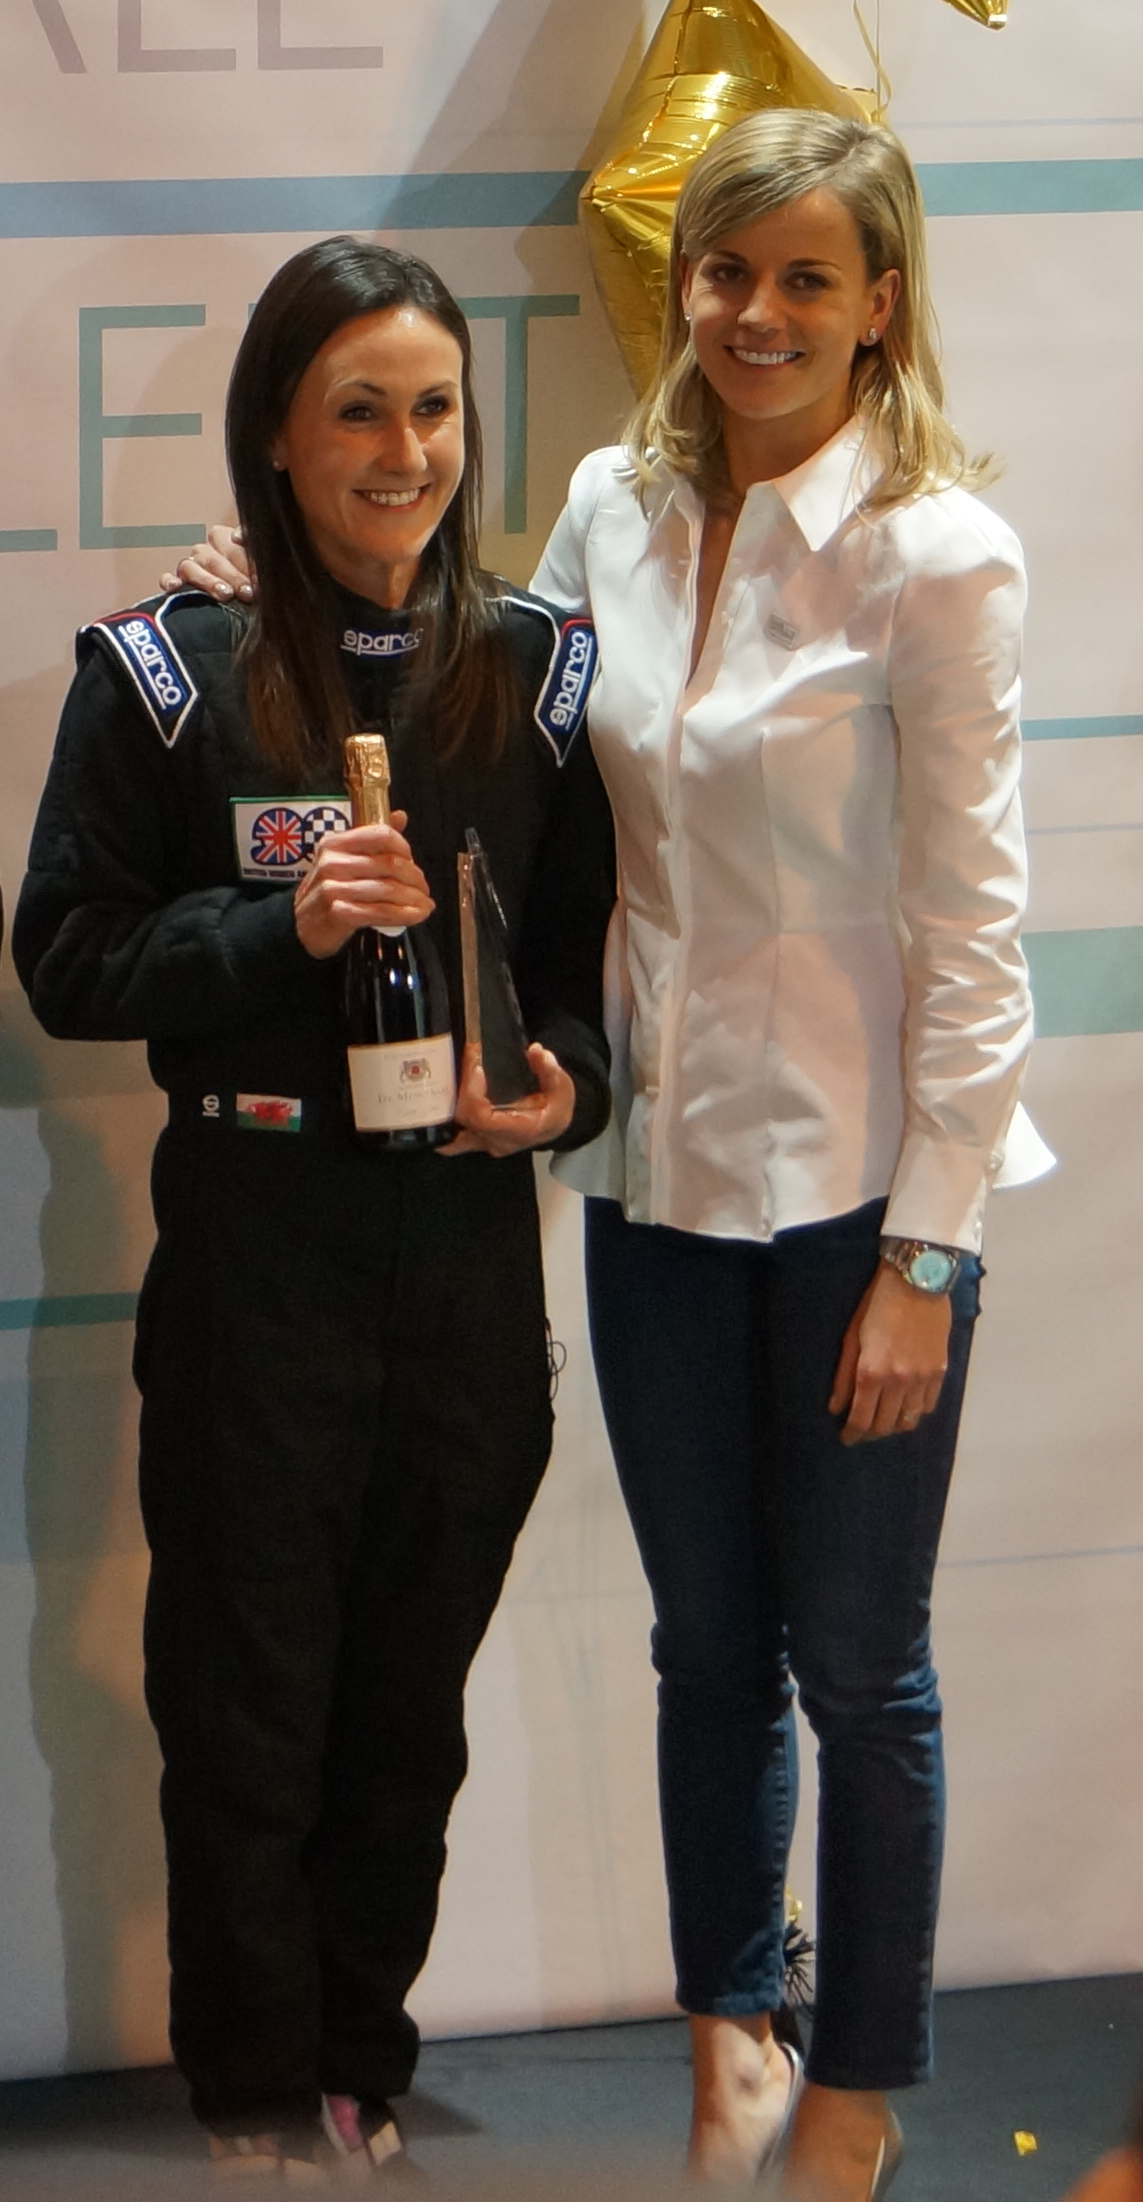 Sara Williams wins BWRDC GoldStars award presented by Susie Wolff